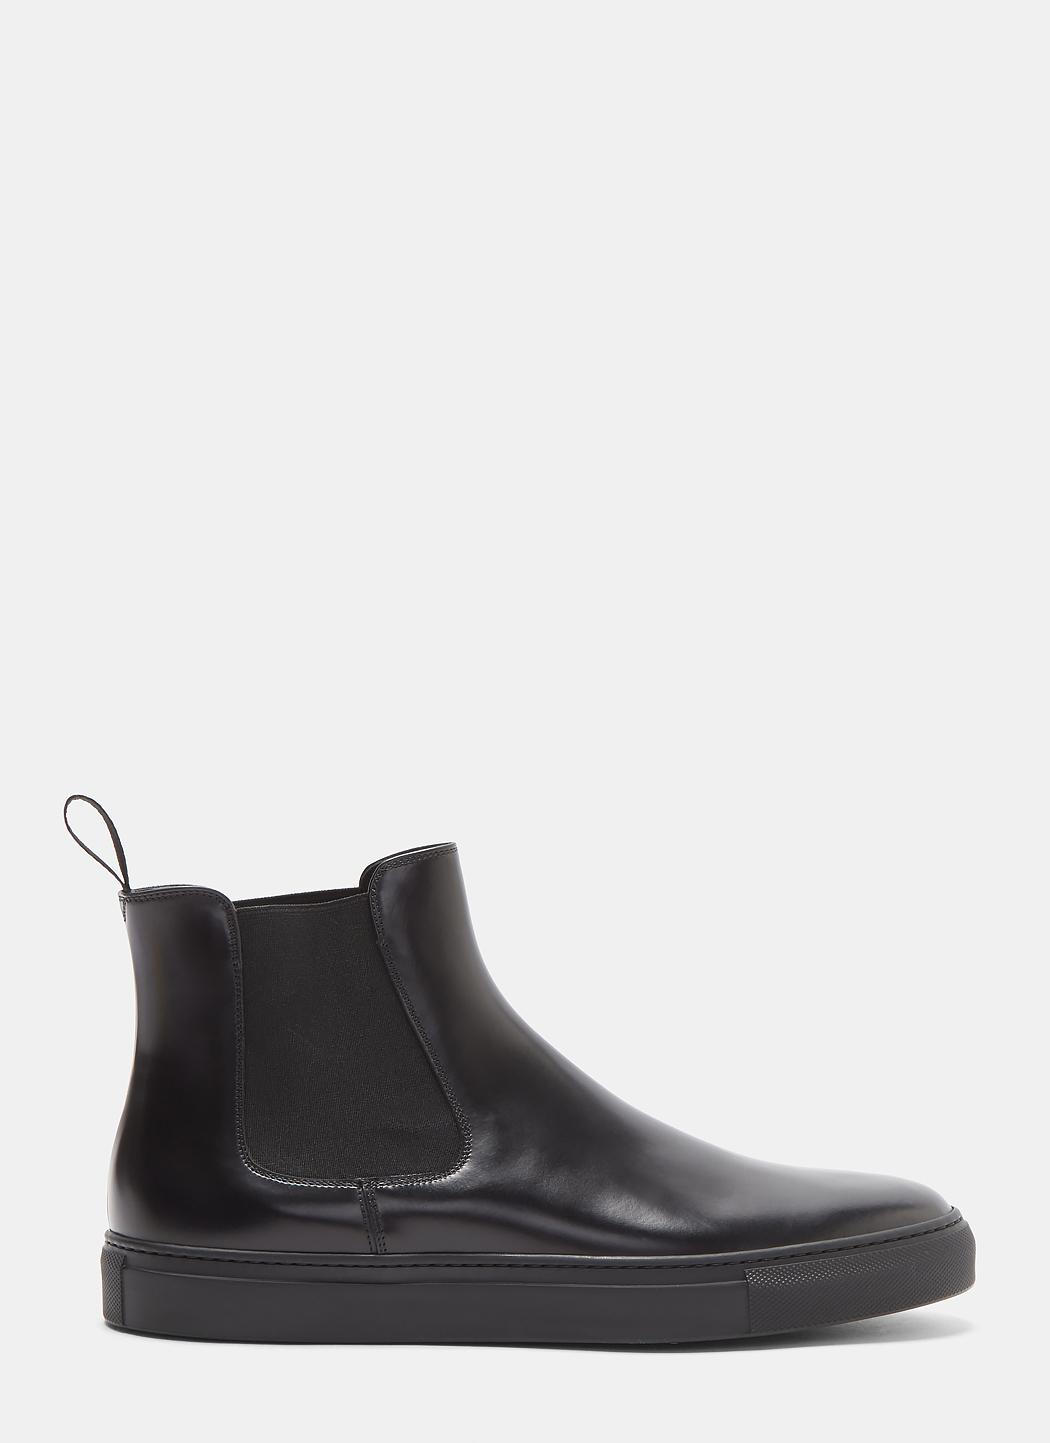 Chelsea Boot Sneakers Aiezen sq1La42